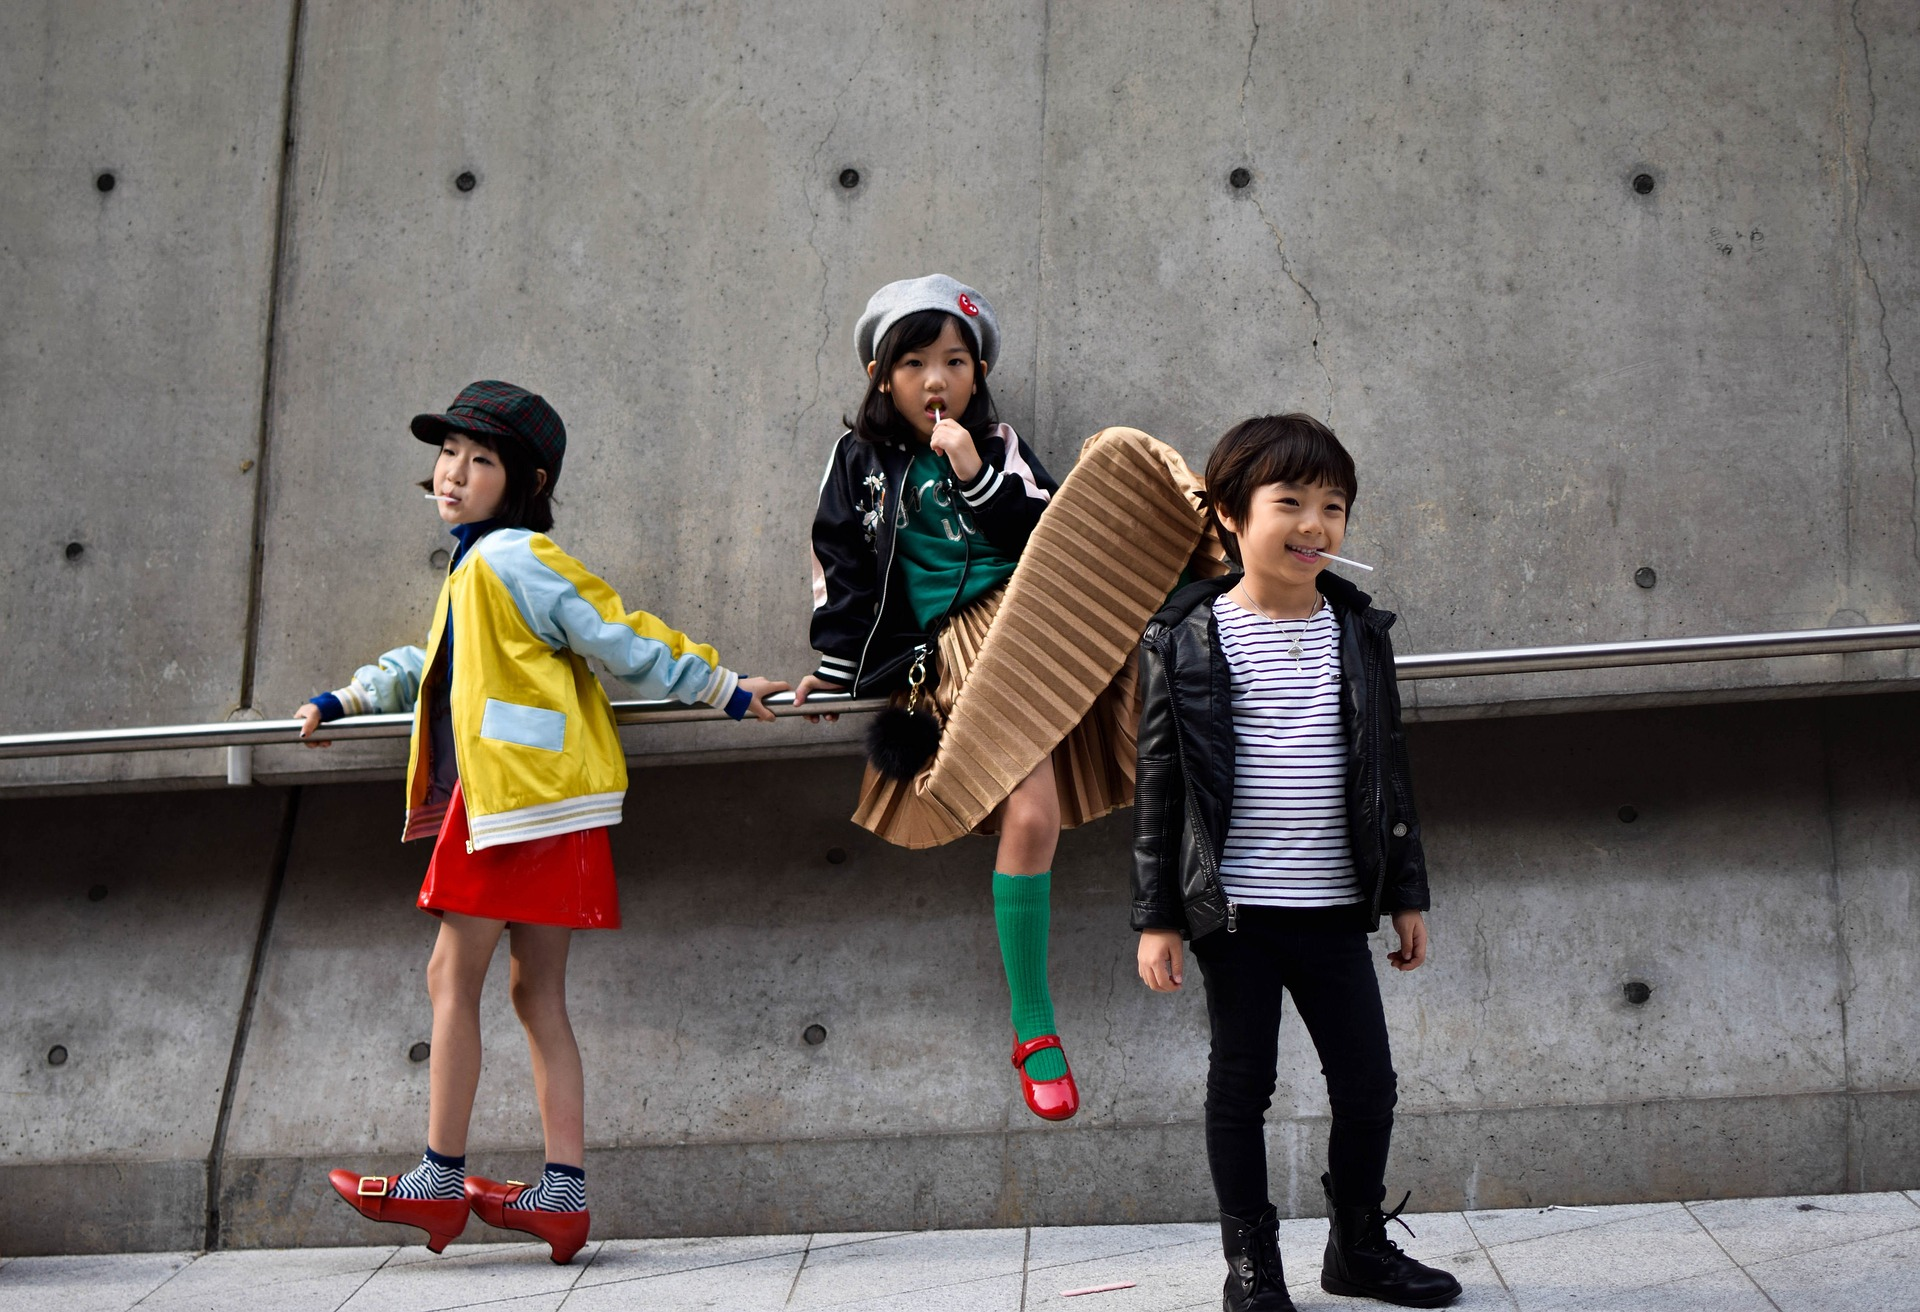 5 Reasons Why We Should Buy Second-Hand Designer Kids Clothes